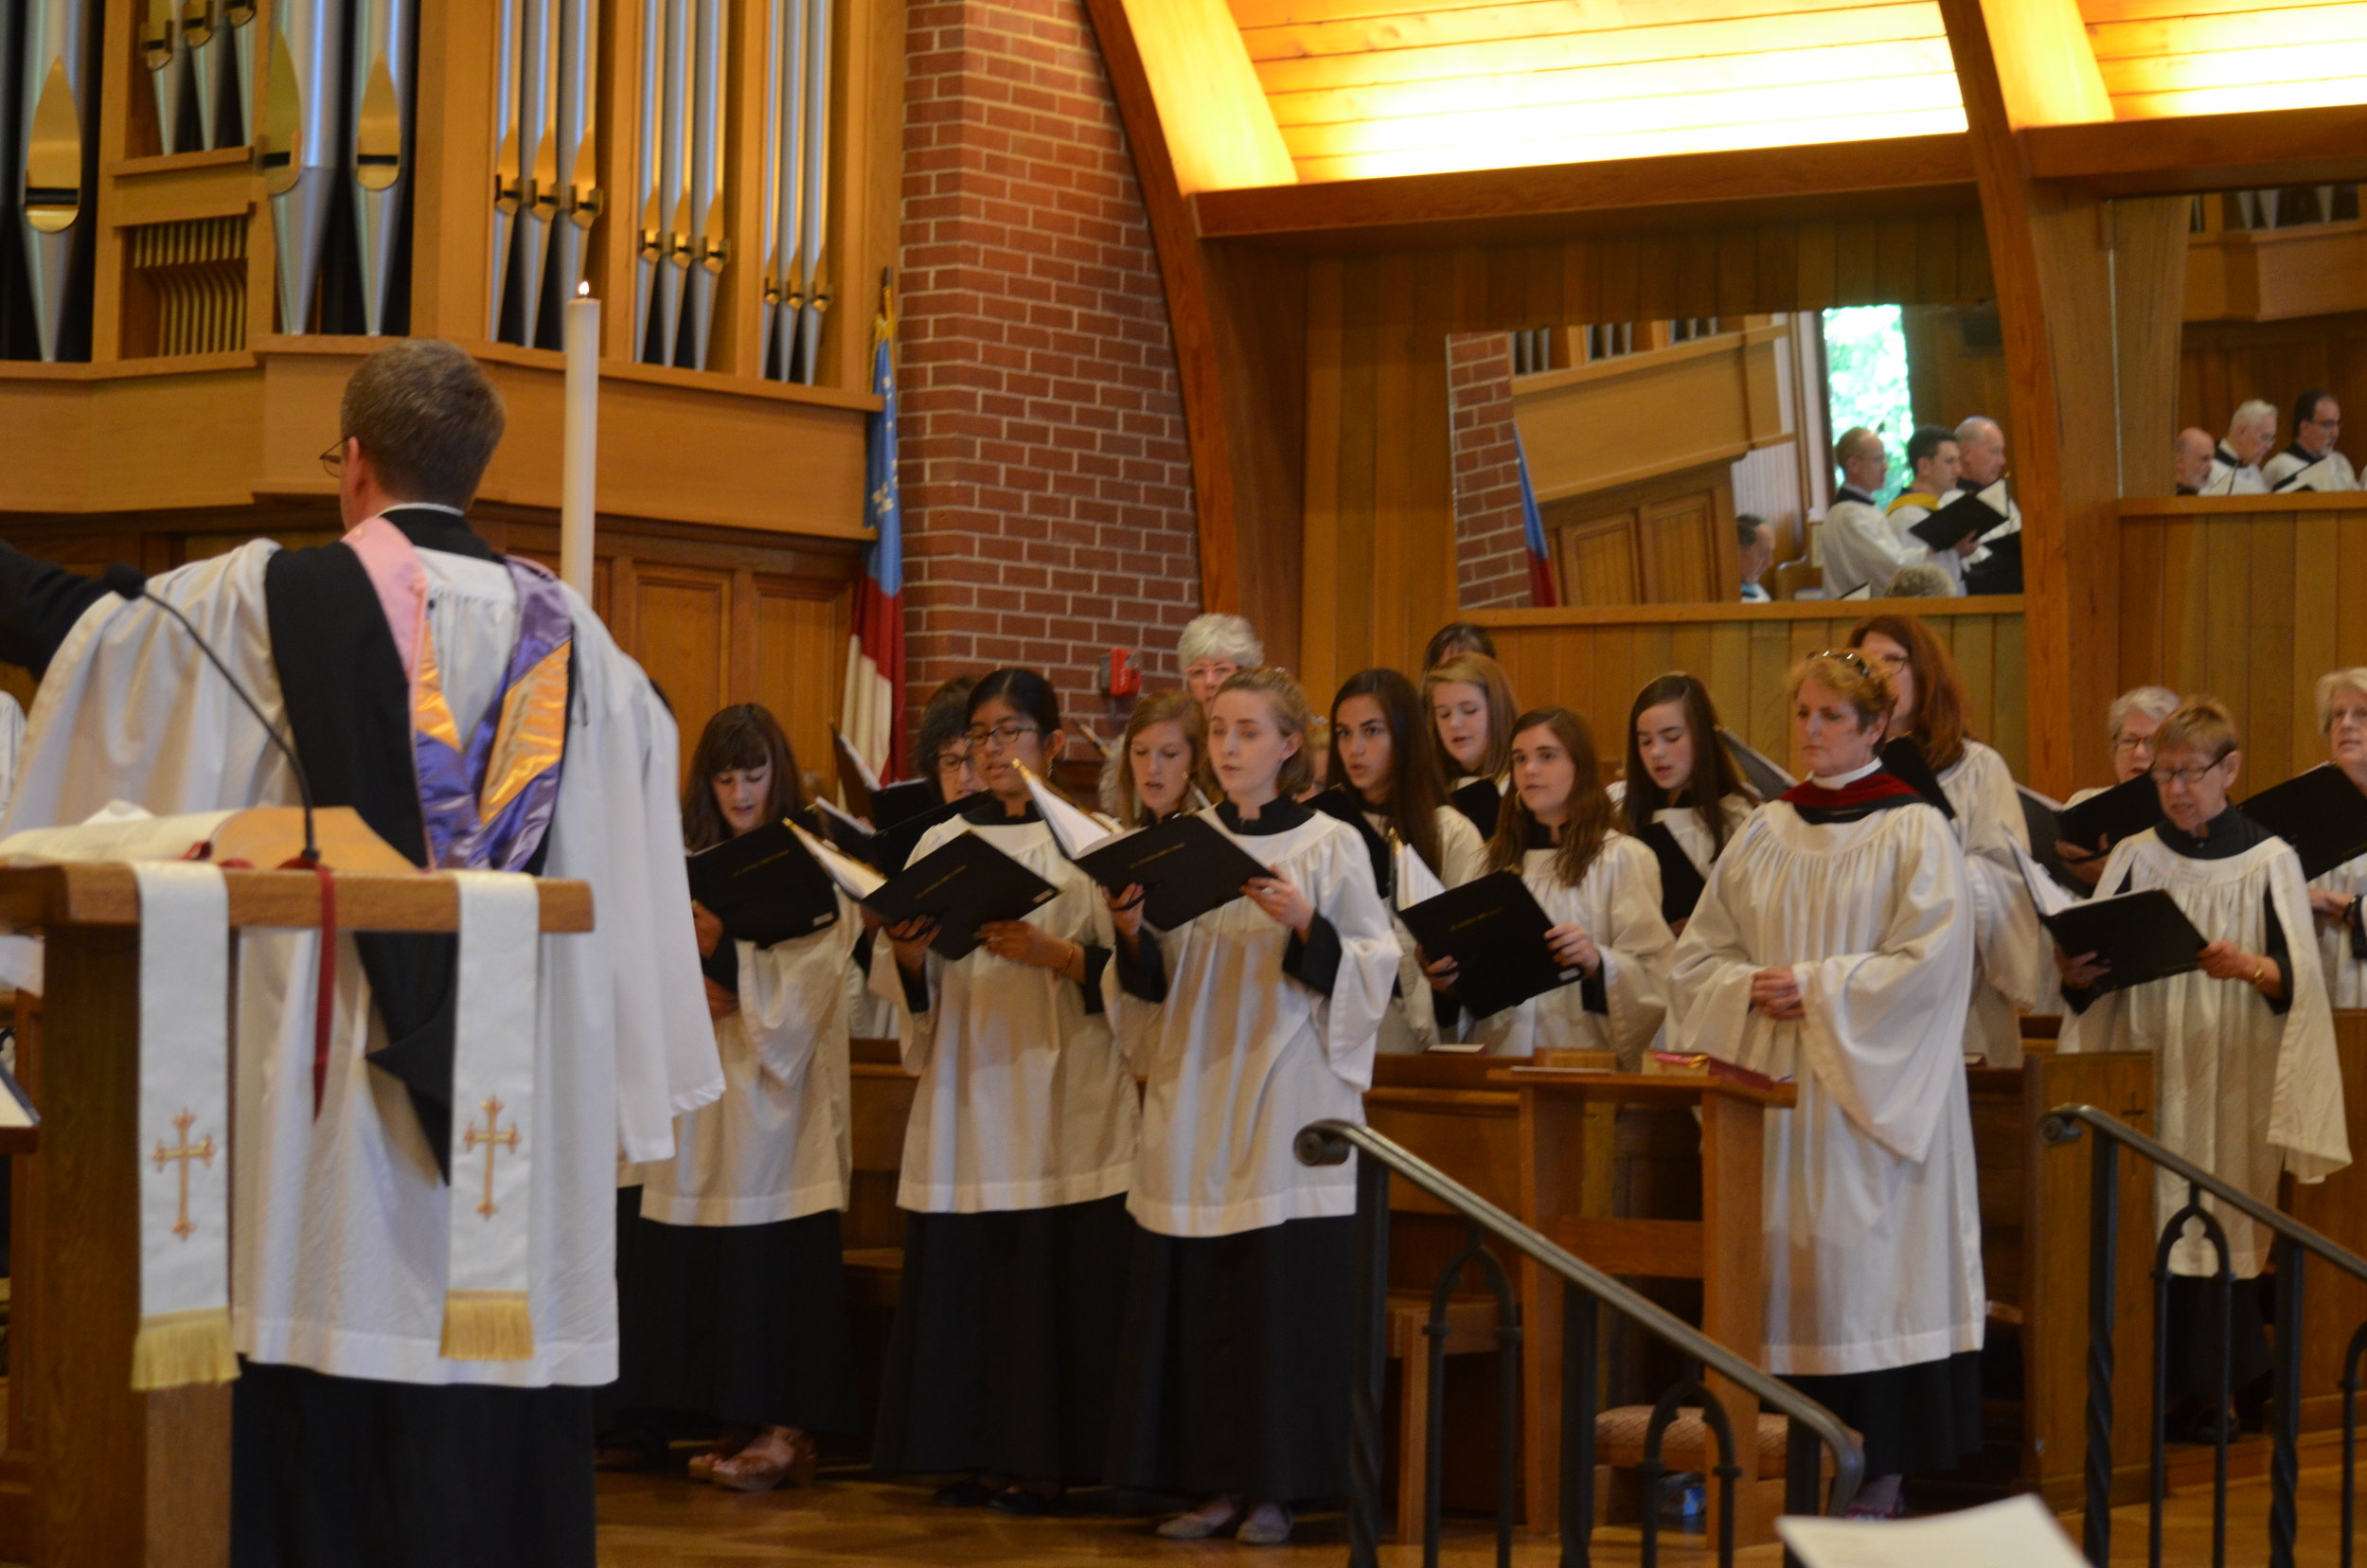 Choral Evensong at St. Michael's Episcopal Church, Raleigh